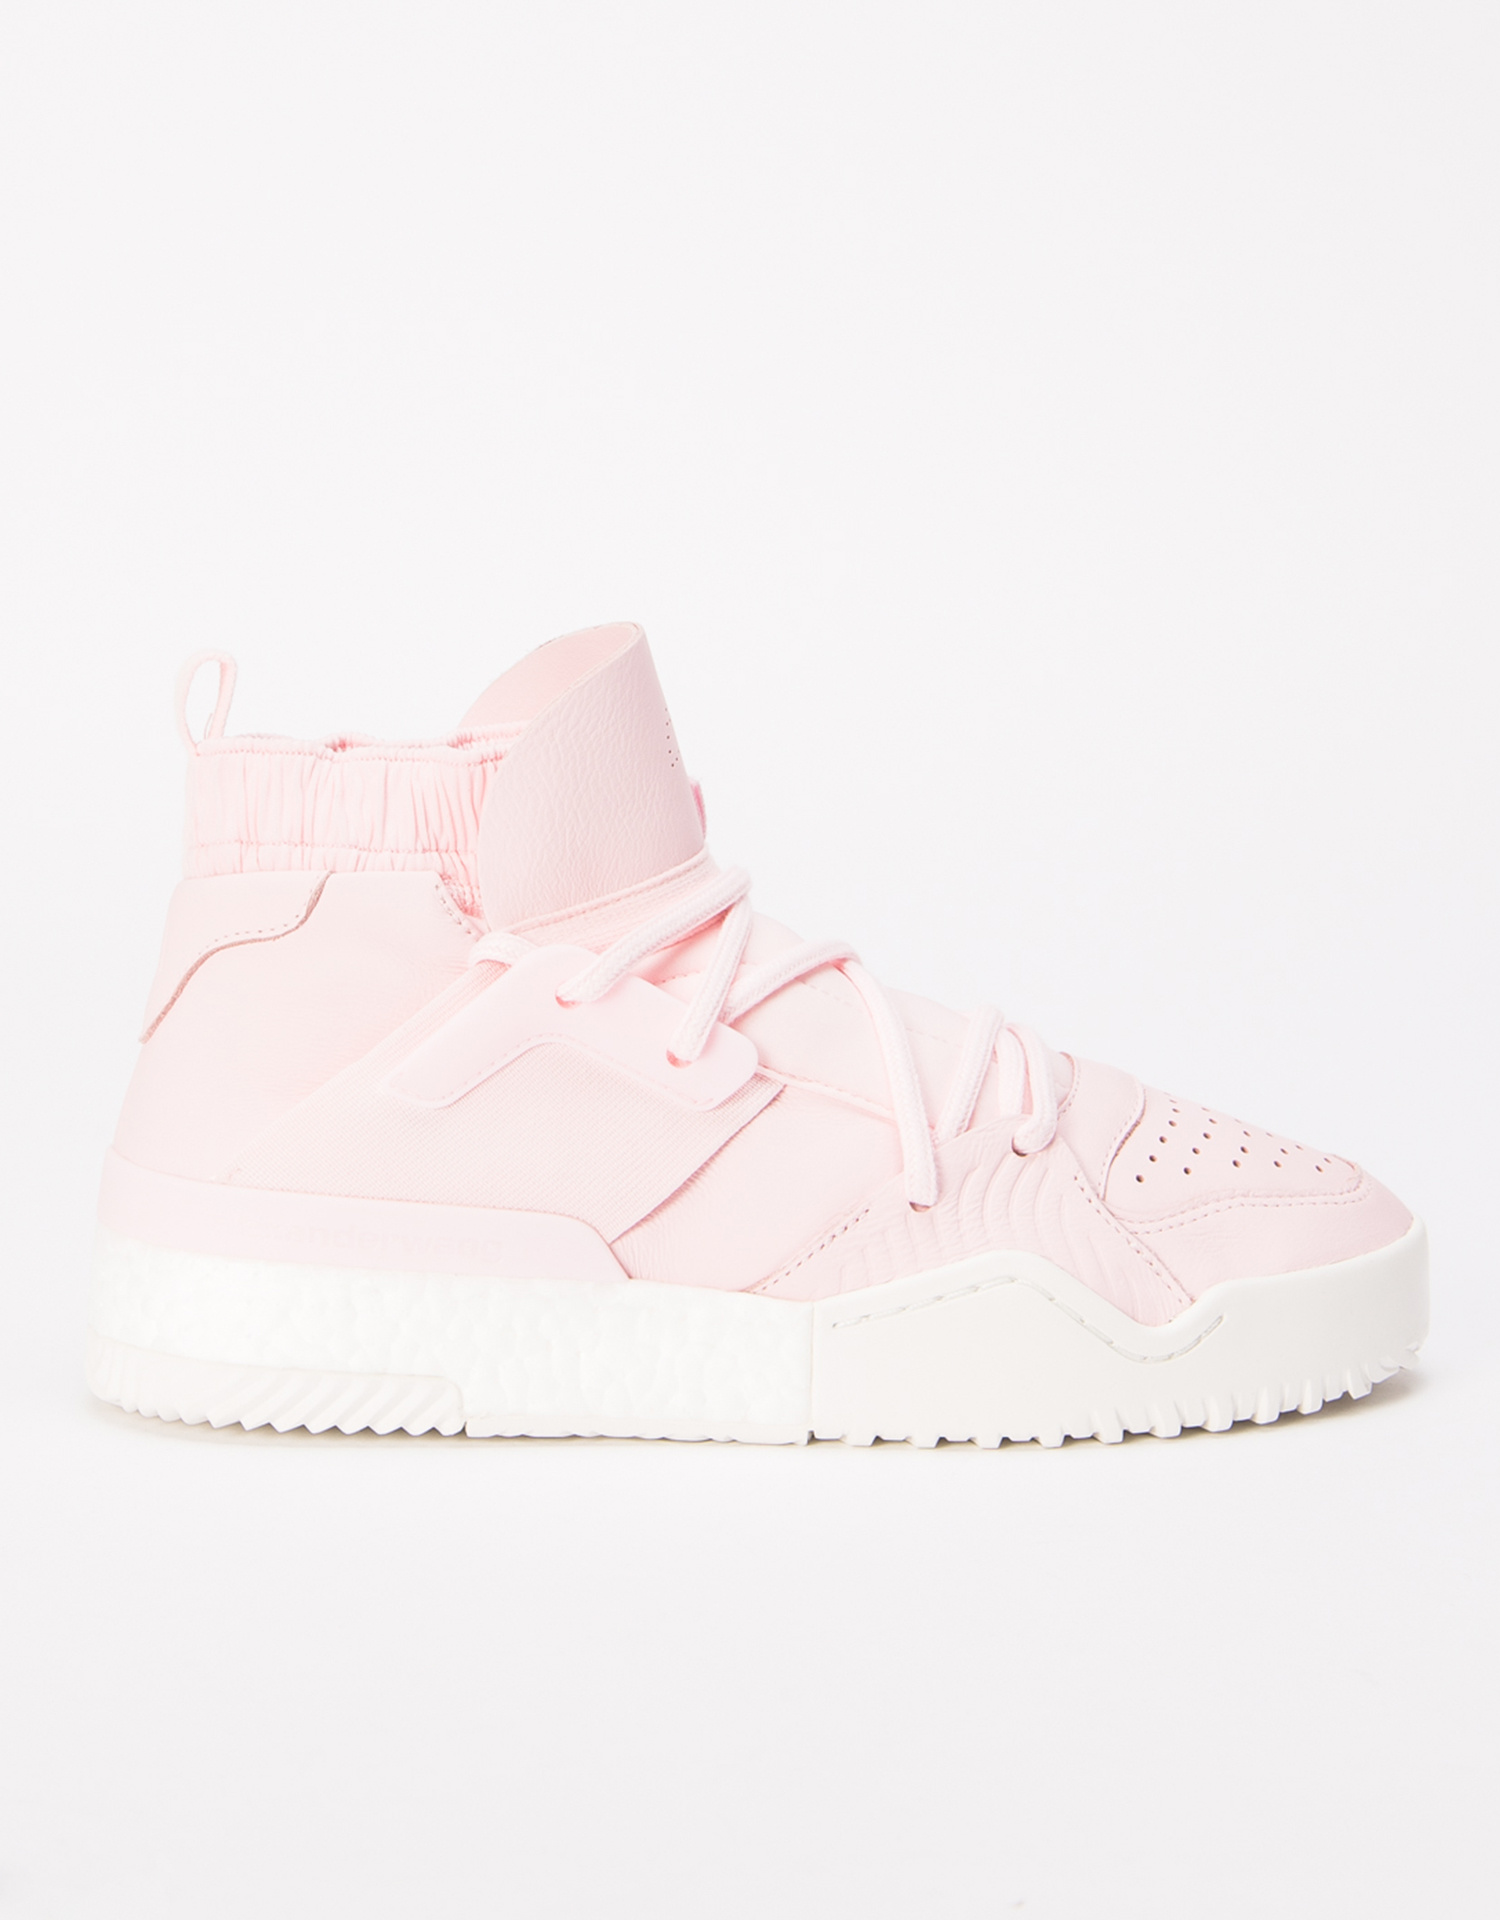 Alexander Wang X Adidas BBall CLEAR PINK/CLEAR PINK/CORE WHITE